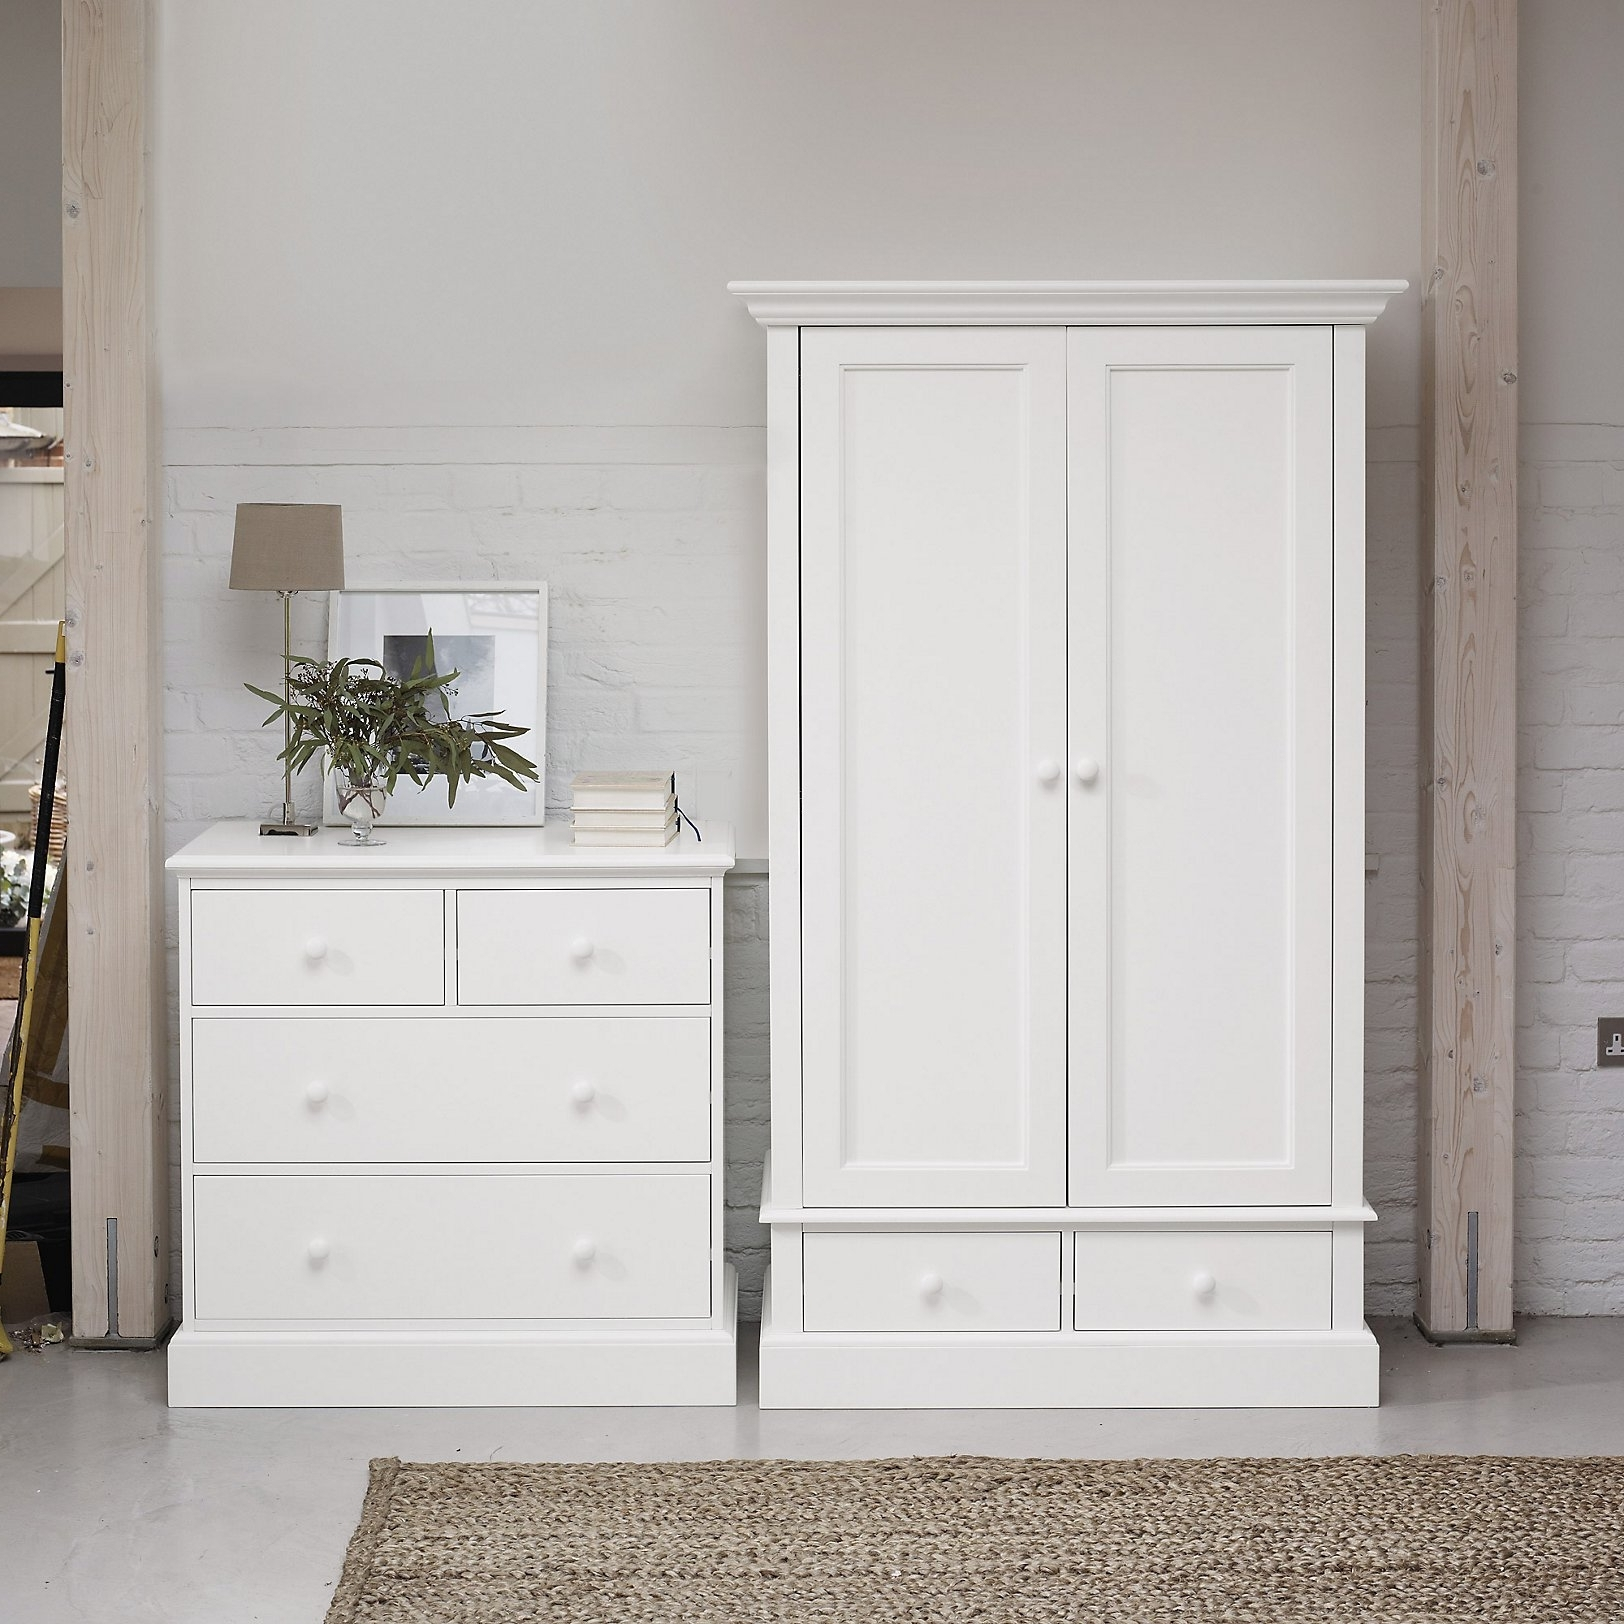 Small Wardrobes For Preferred Classic Small Wardrobe (View 12 of 15)